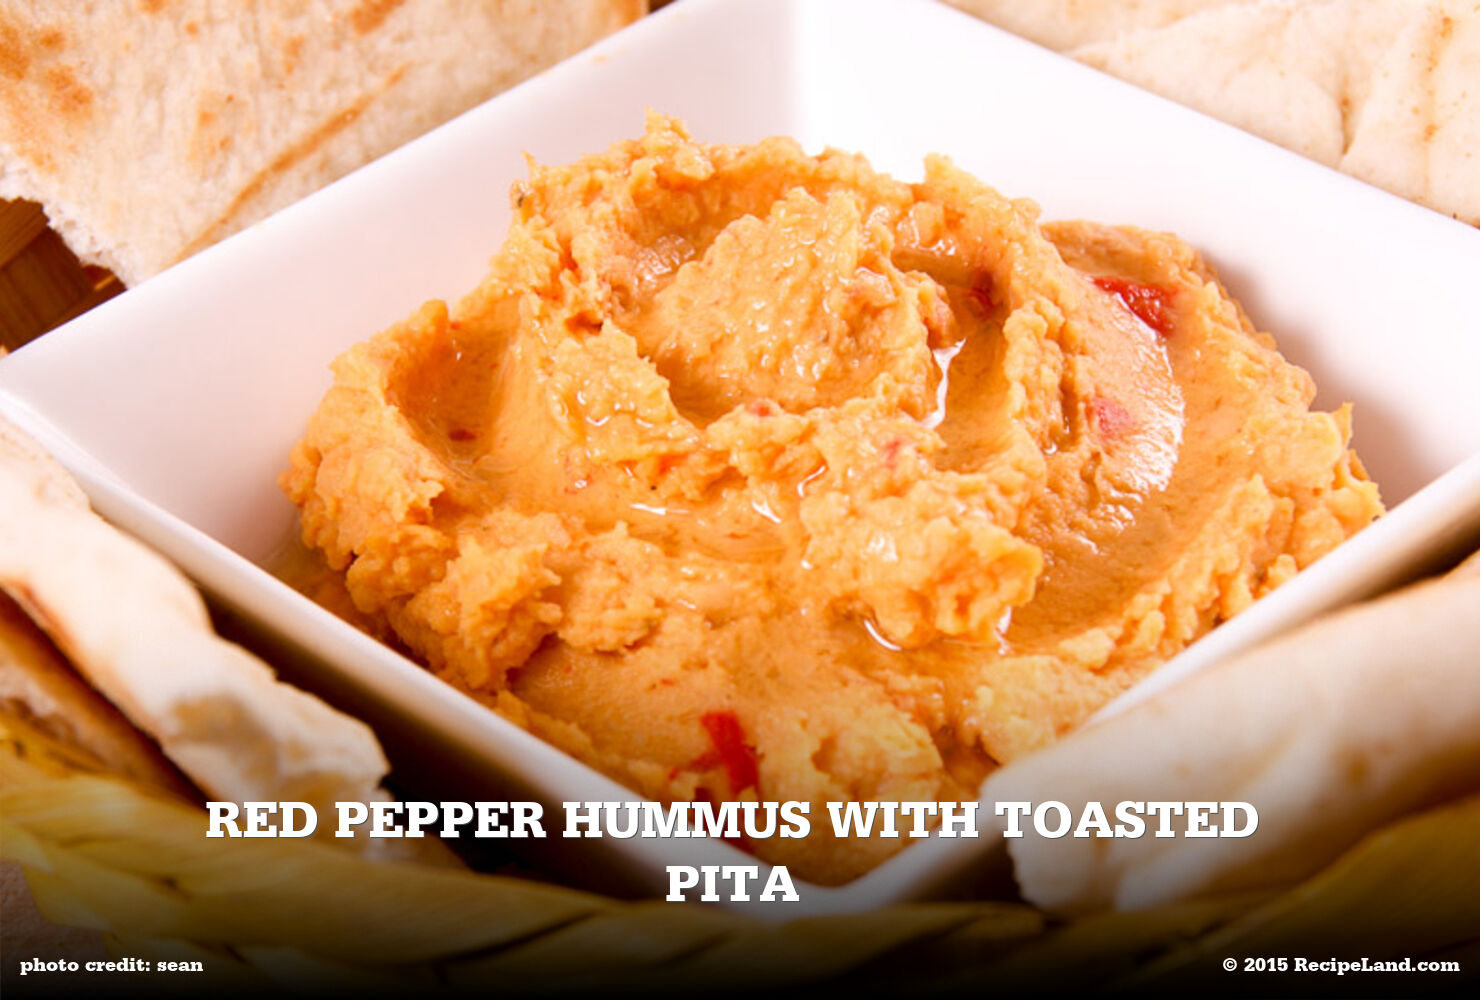 Red Pepper Hummus with Toasted Pita